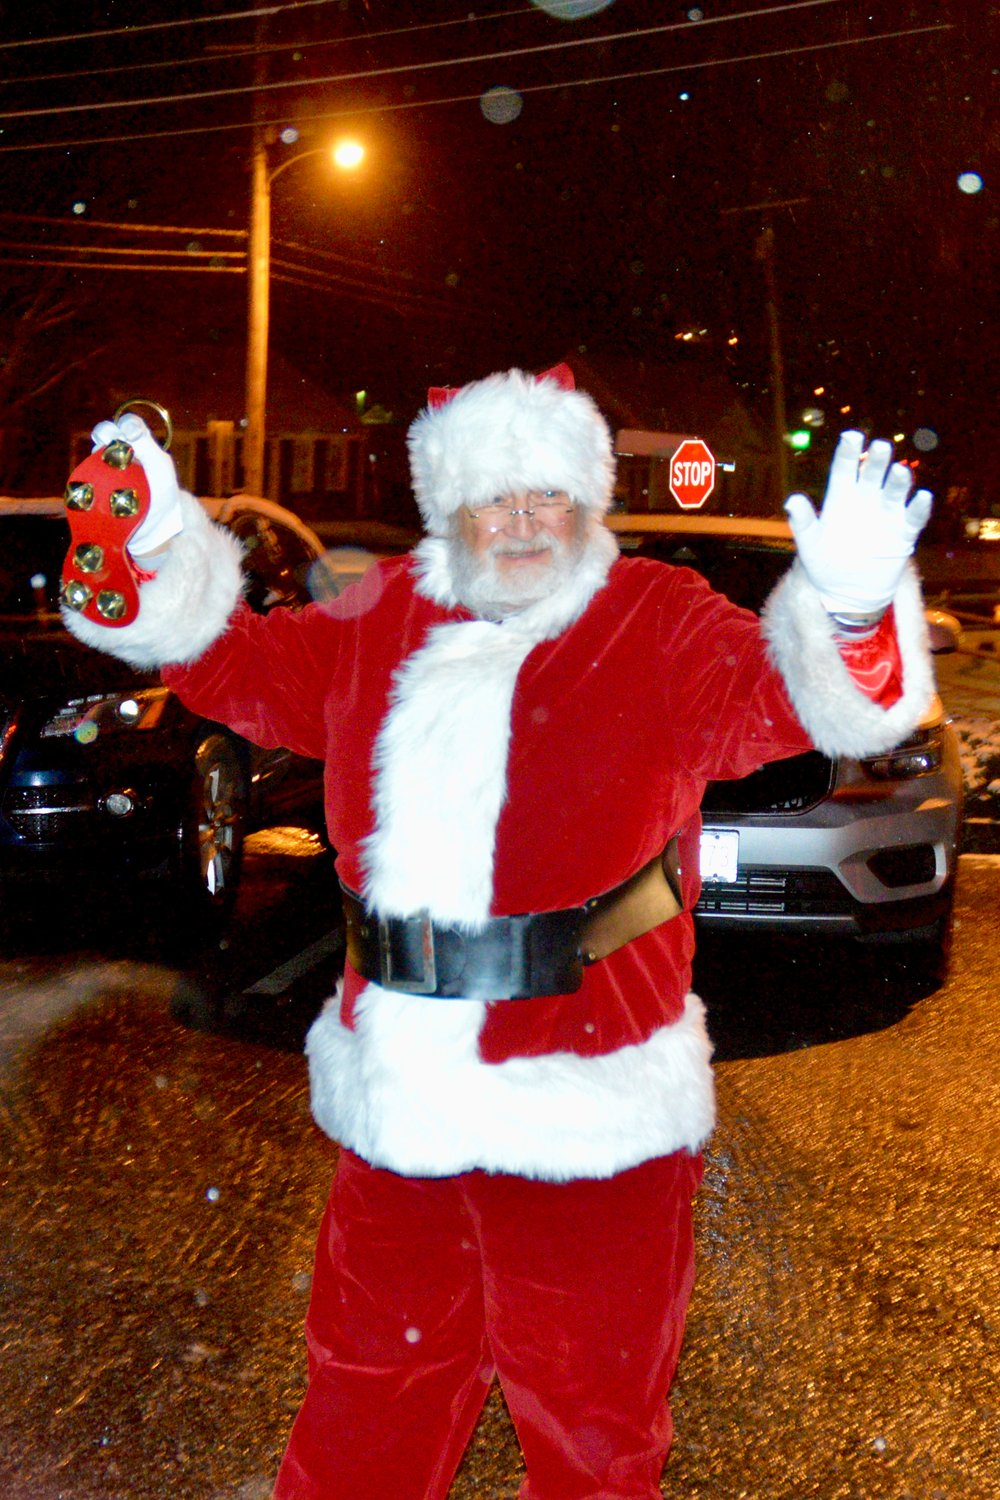 Santa Claus greets his fans after having arrived via fire truck to the Portsmouth Free Public Library Sunday night. He then led the crowd in a countdown of the lighting of the Christmas tree.